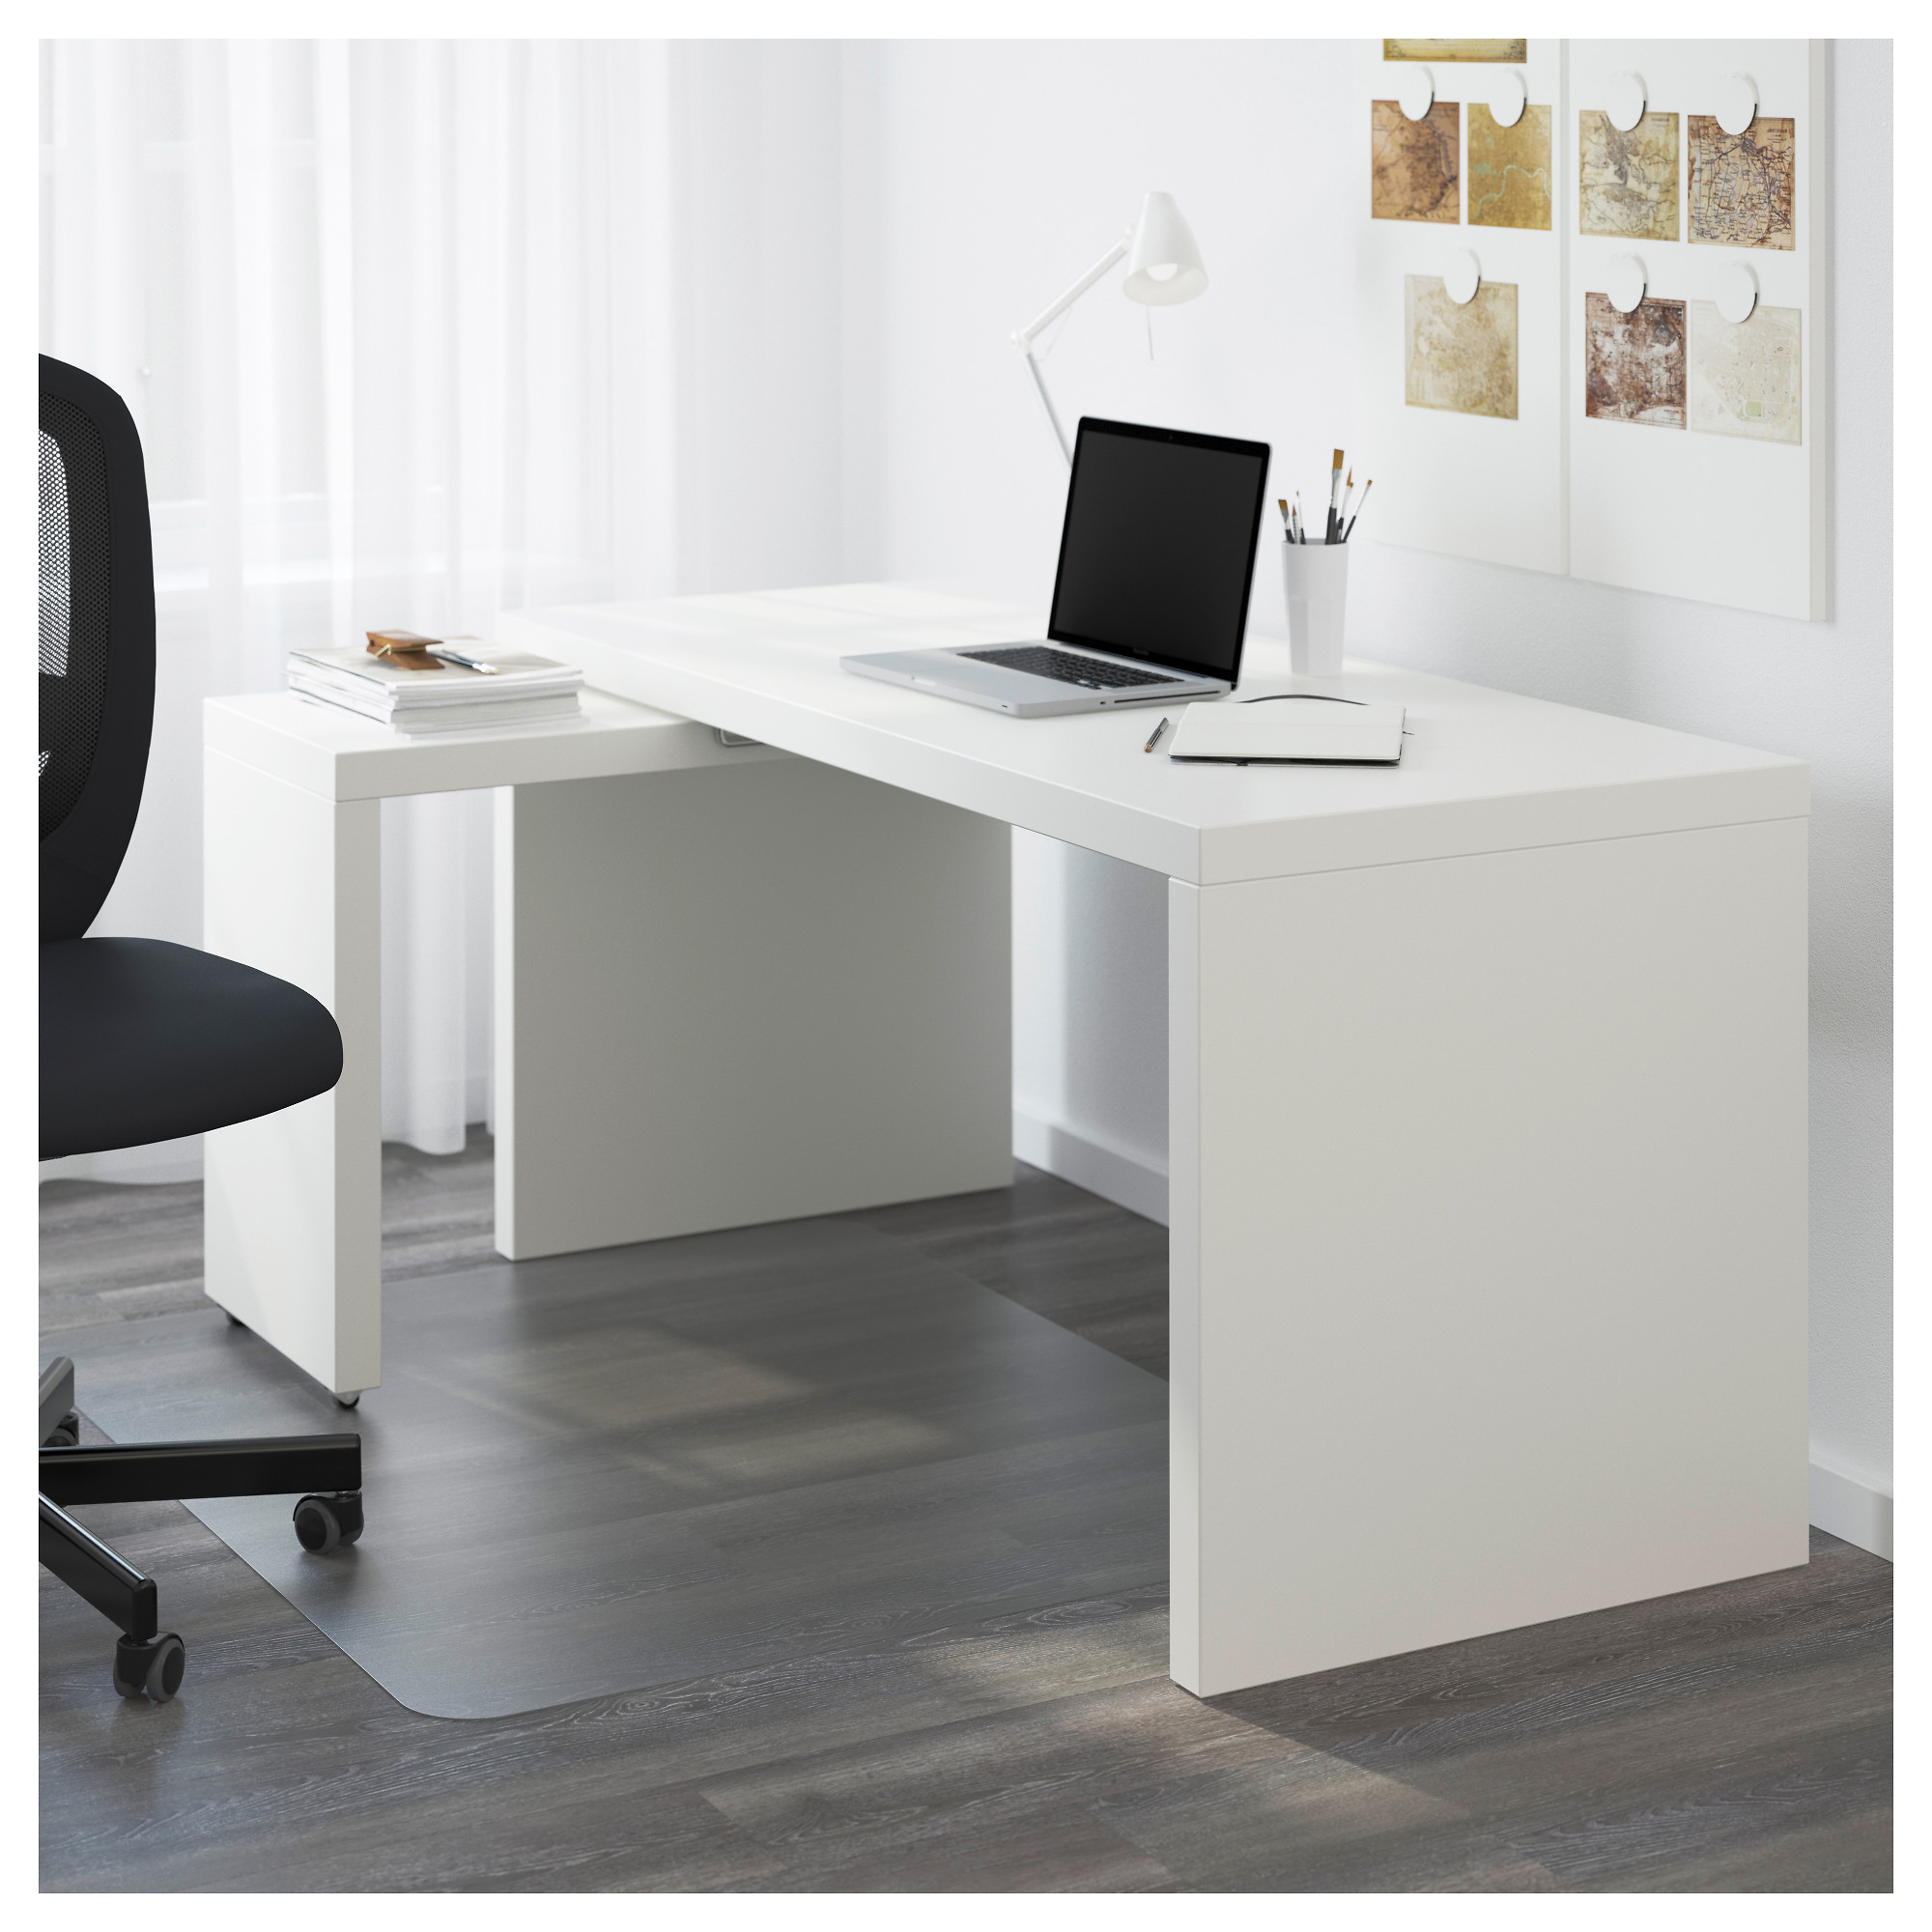 Ordinaire IKEA MALM Desk With Pull Out Panel